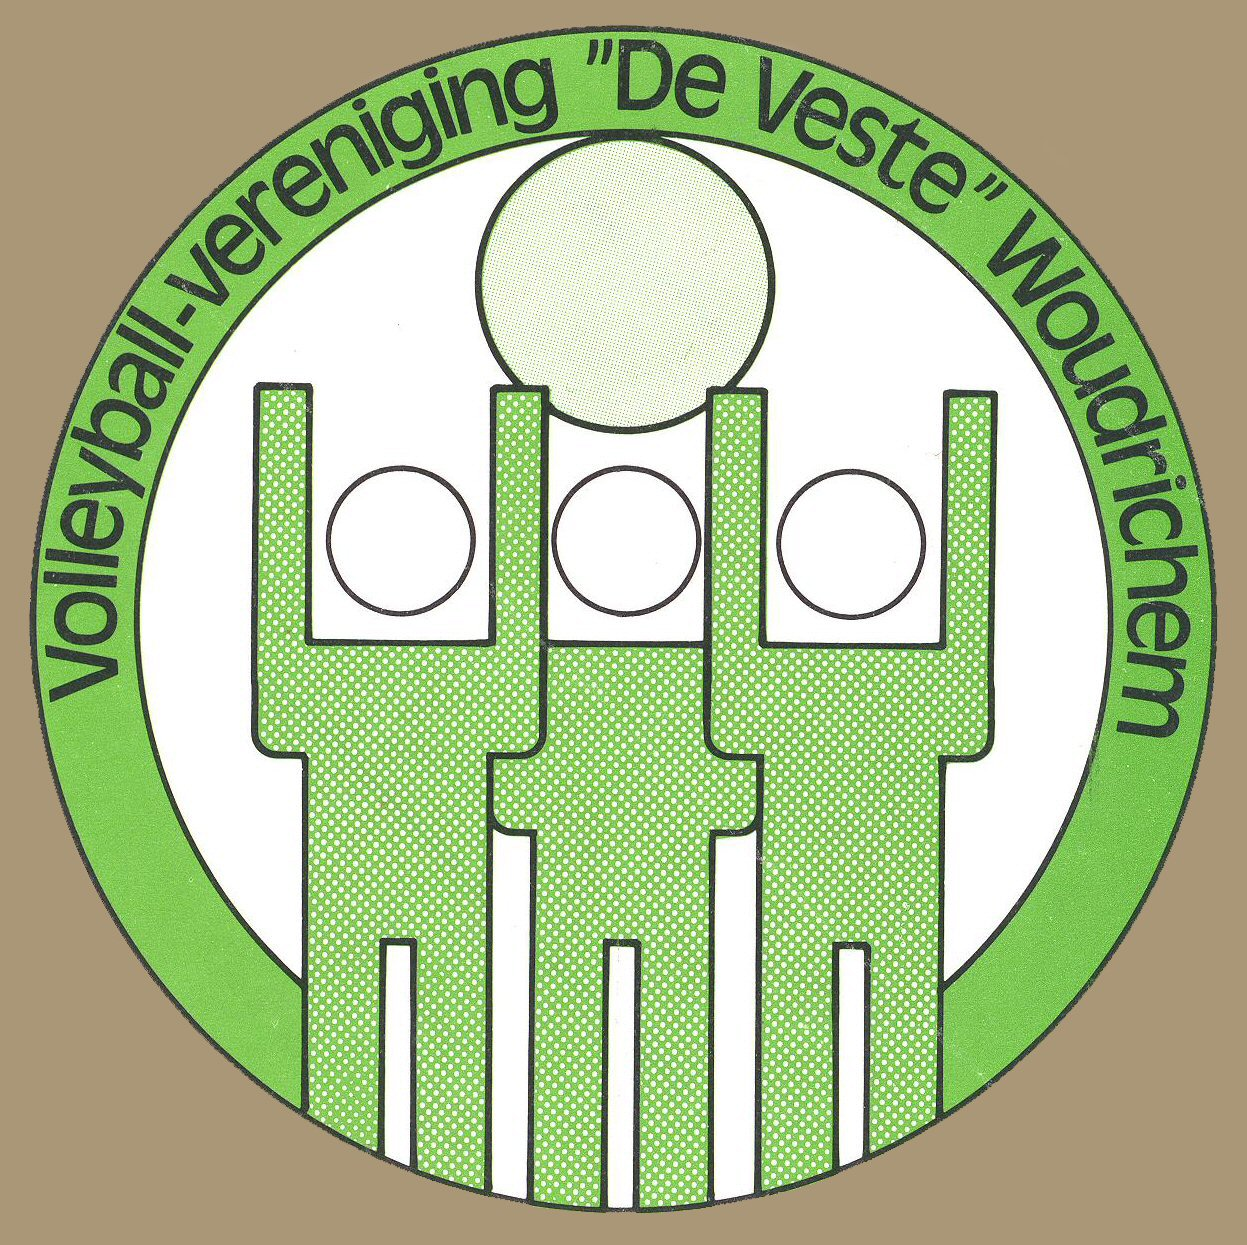 STICK-021 Volleyball-vereniging De Veste